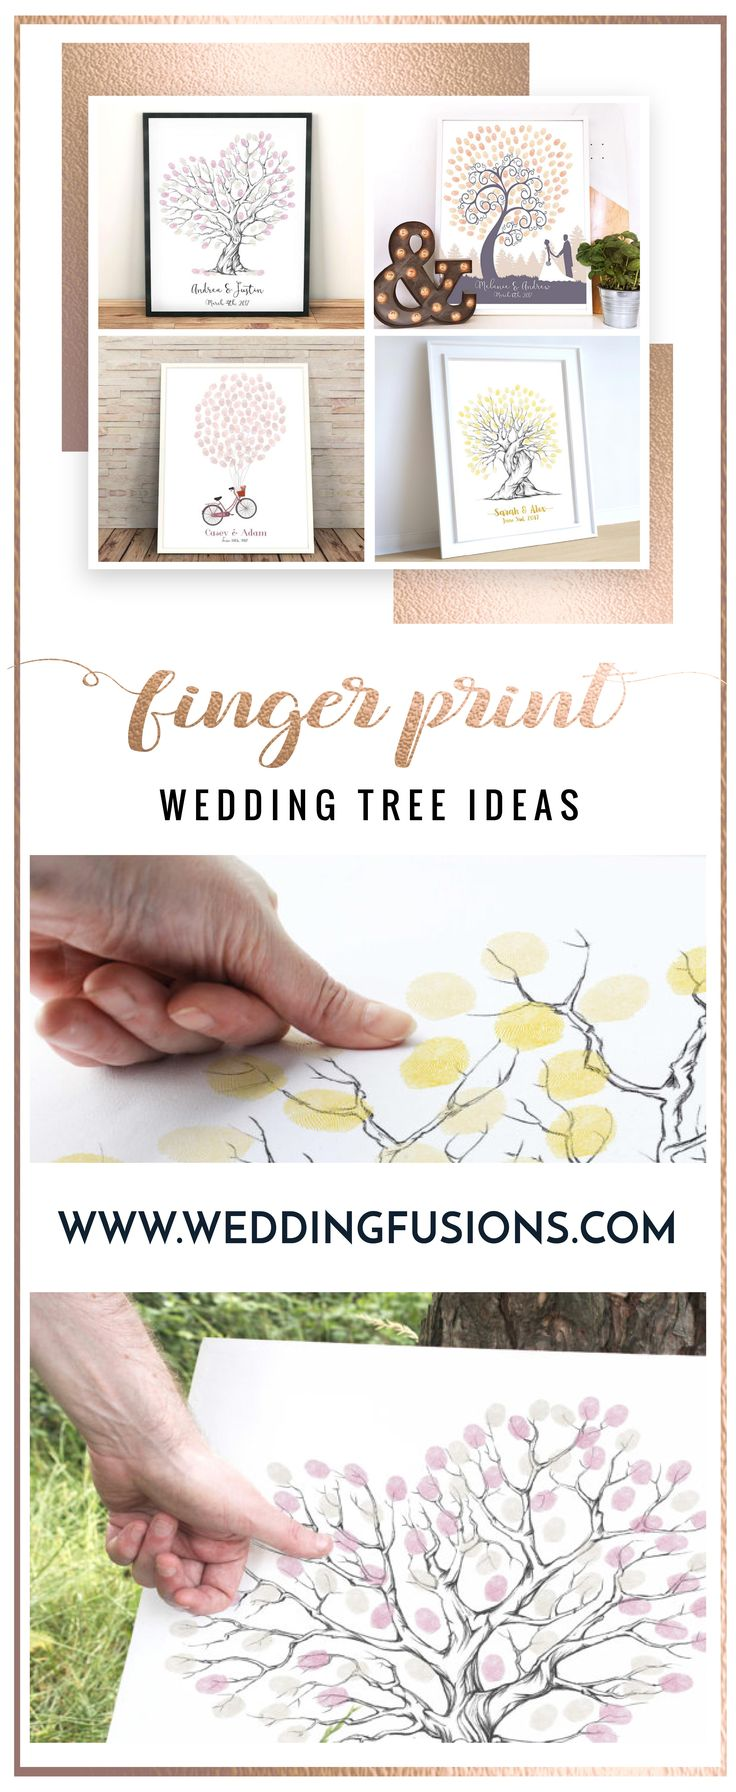 Wedding Tree / Fingerprint Tree ideas - the perfect alternative to a traditional wedding guest book.